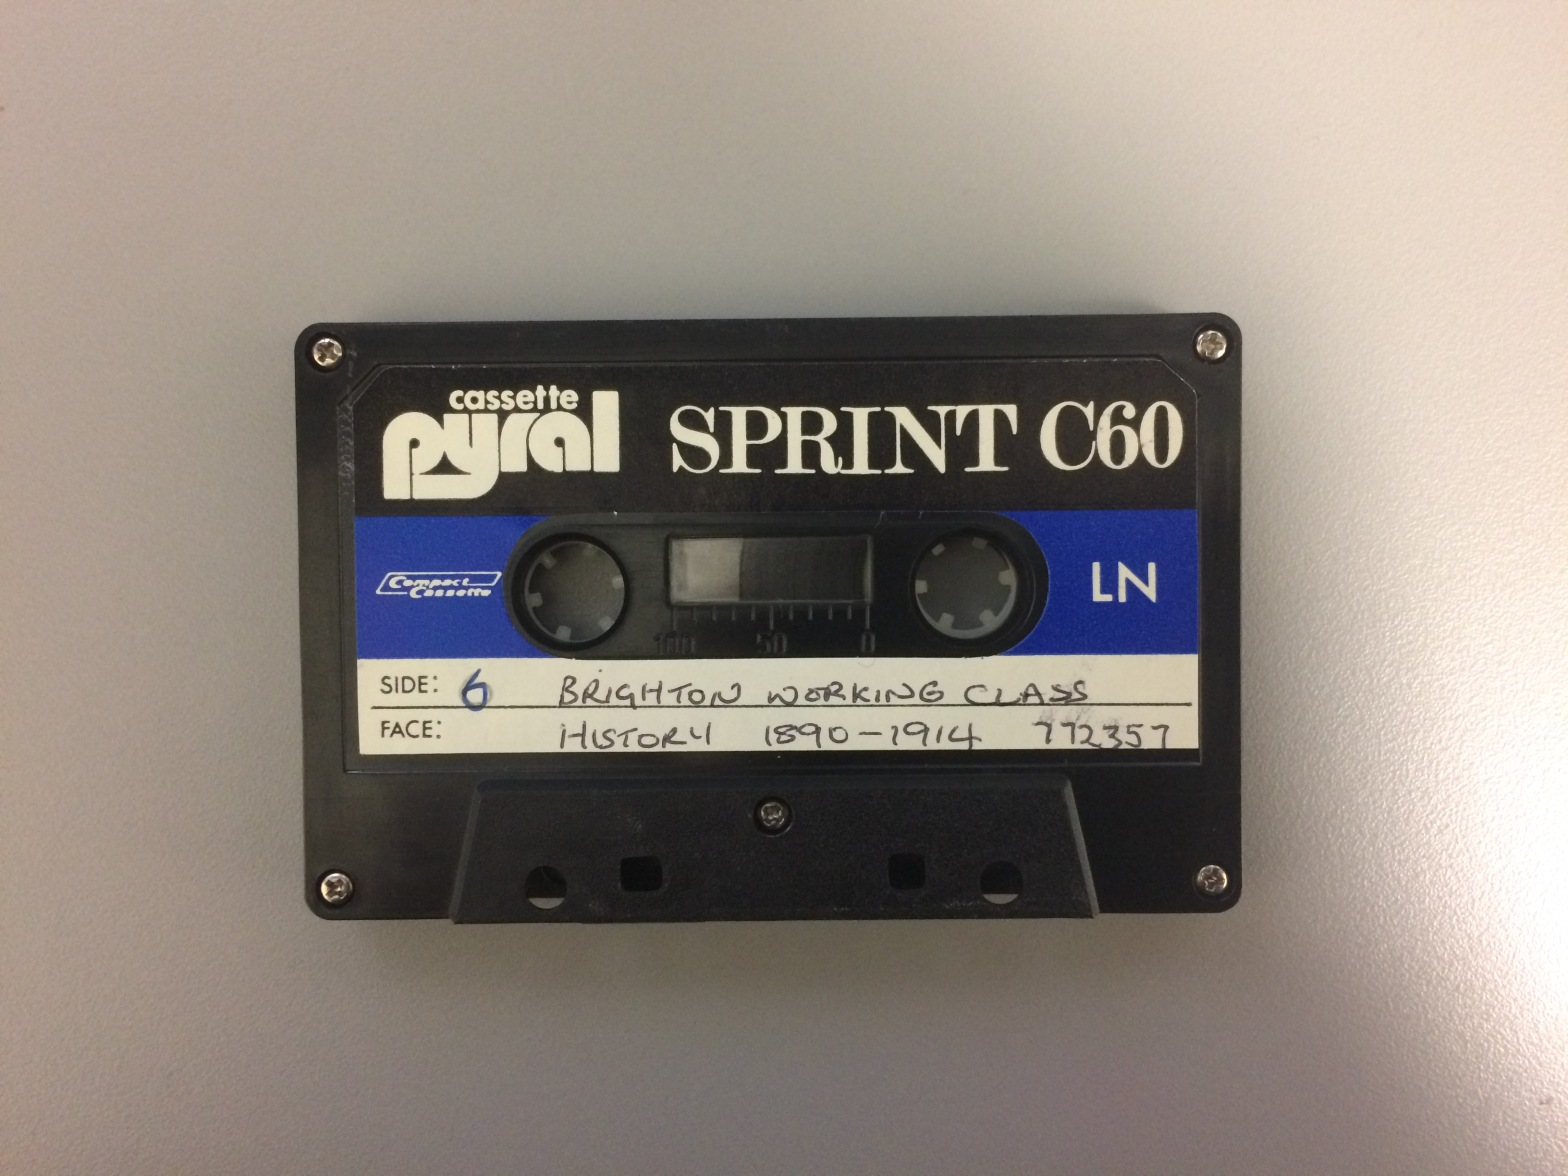 A black compact cassette tape with a white and blue label.